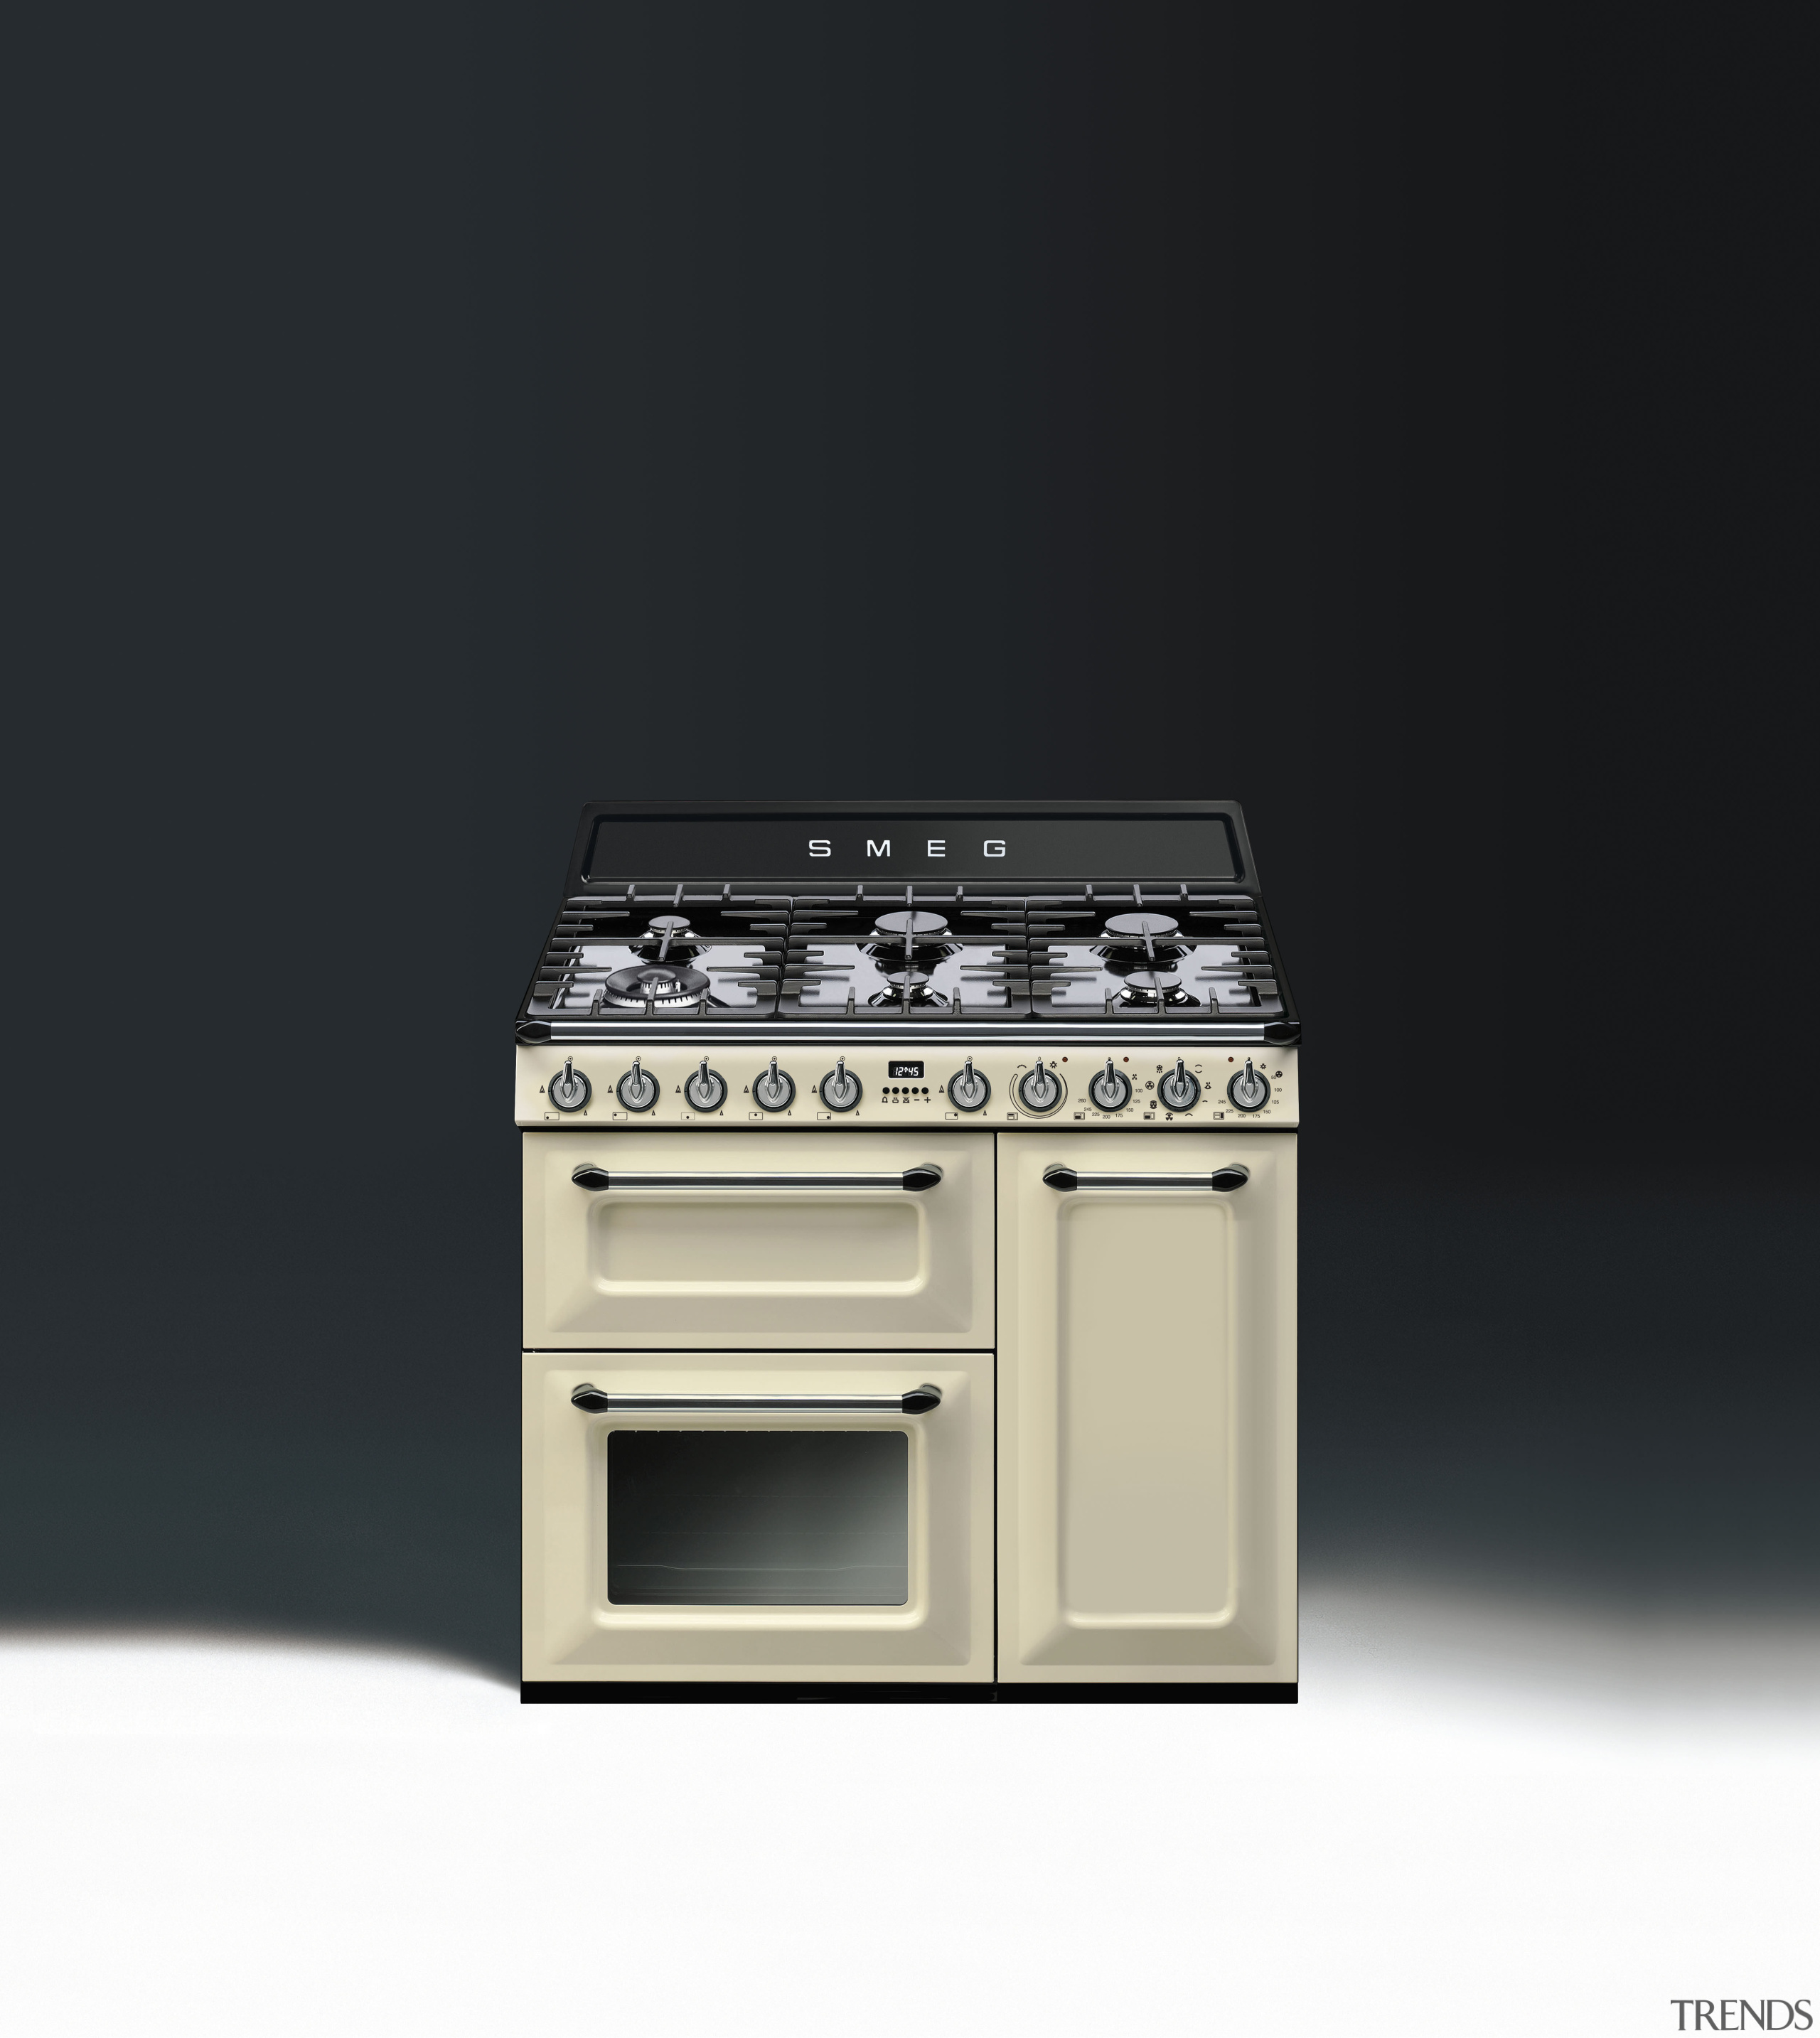 Whether you are entertaining on a grand scale gas stove, home appliance, kitchen appliance, major appliance, product, product design, black, white